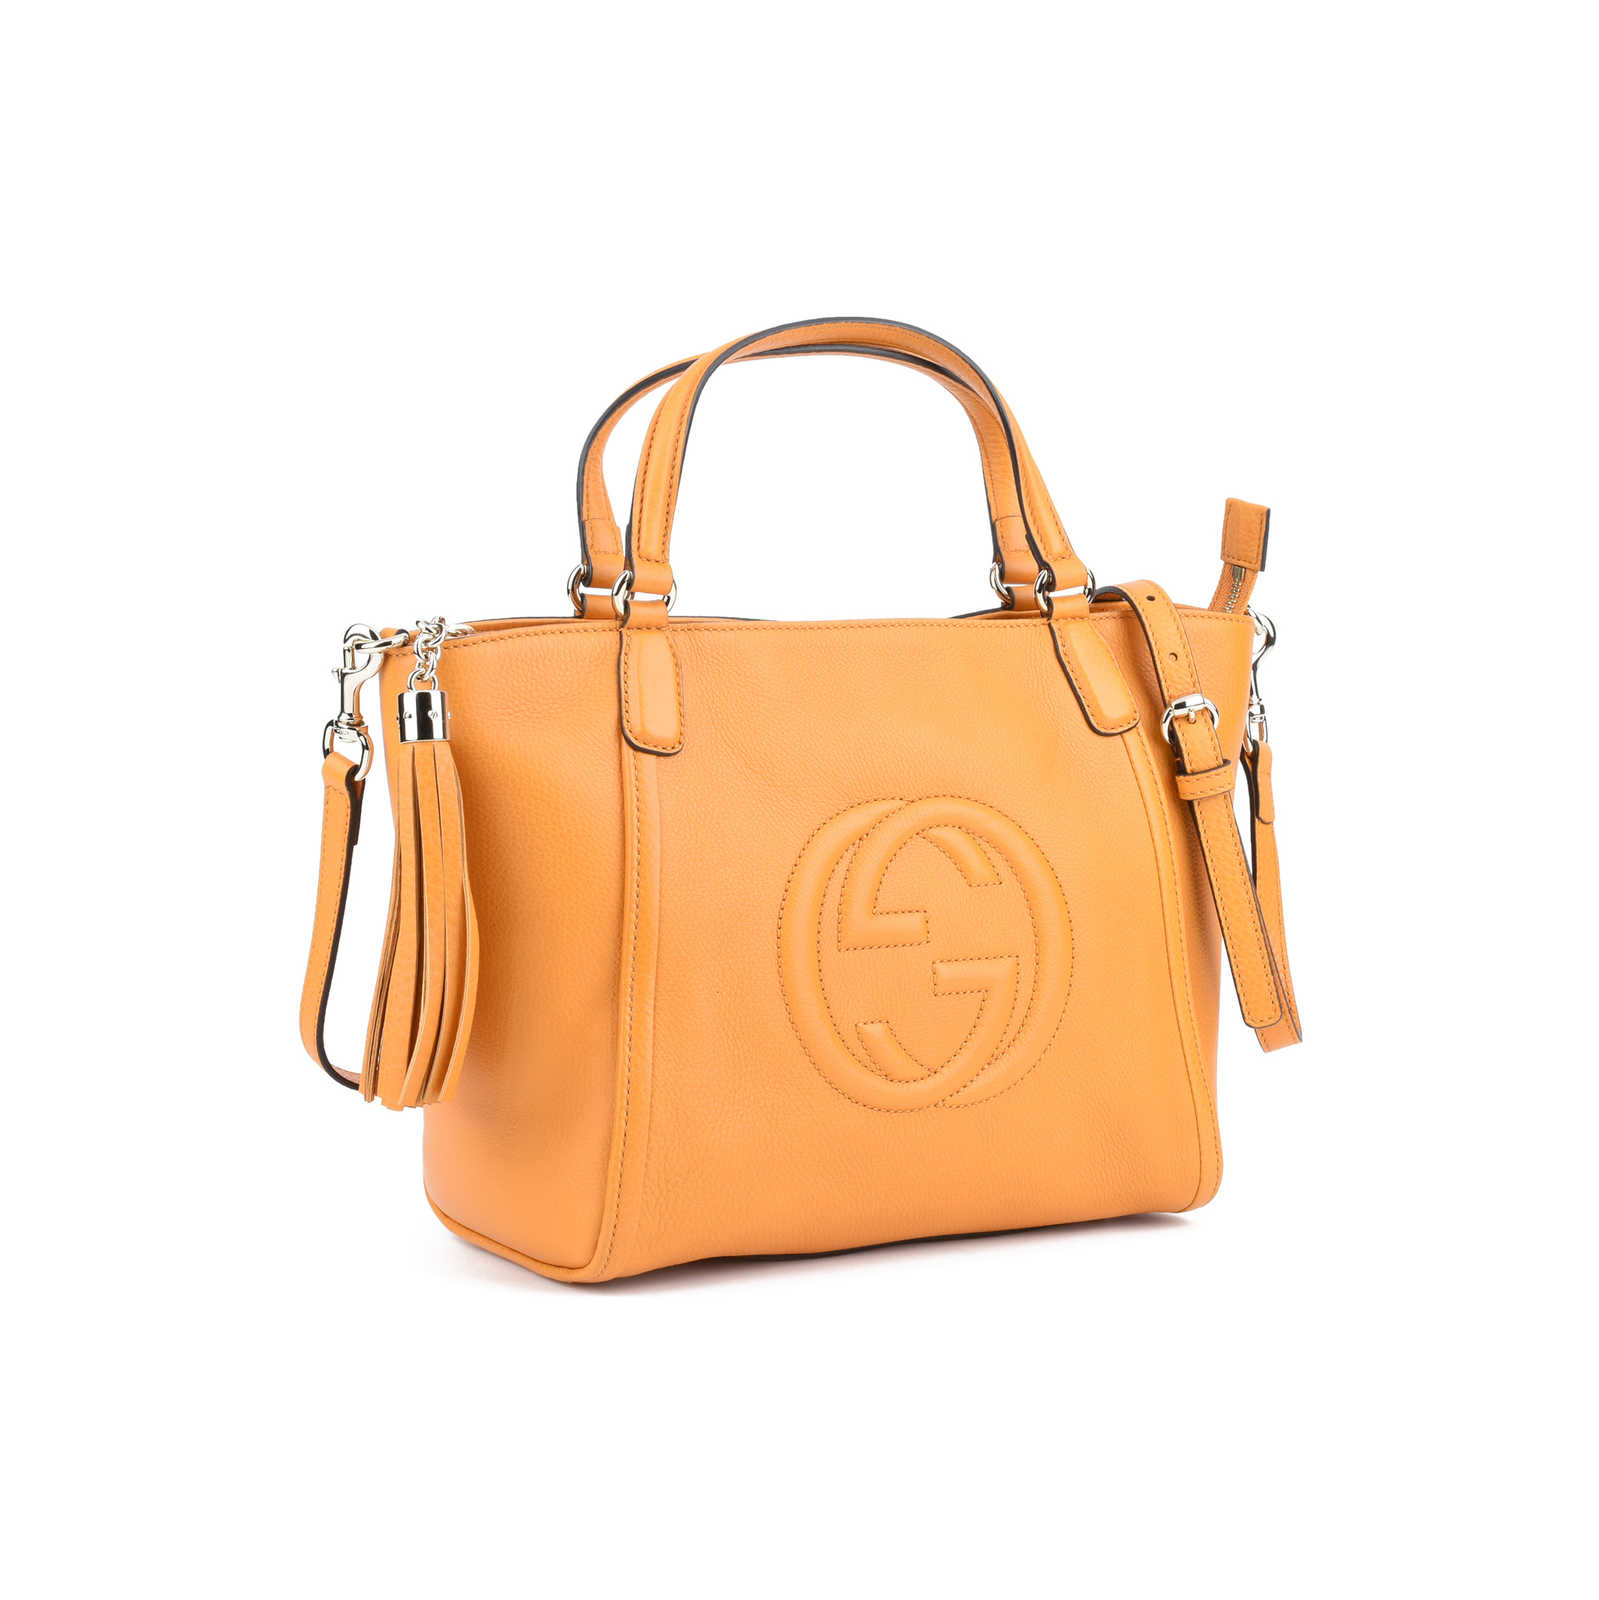 be7687ab7 ... Authentic Second Hand Gucci Soho Leather Top Handle Bag (PSS-420-00001)  ...